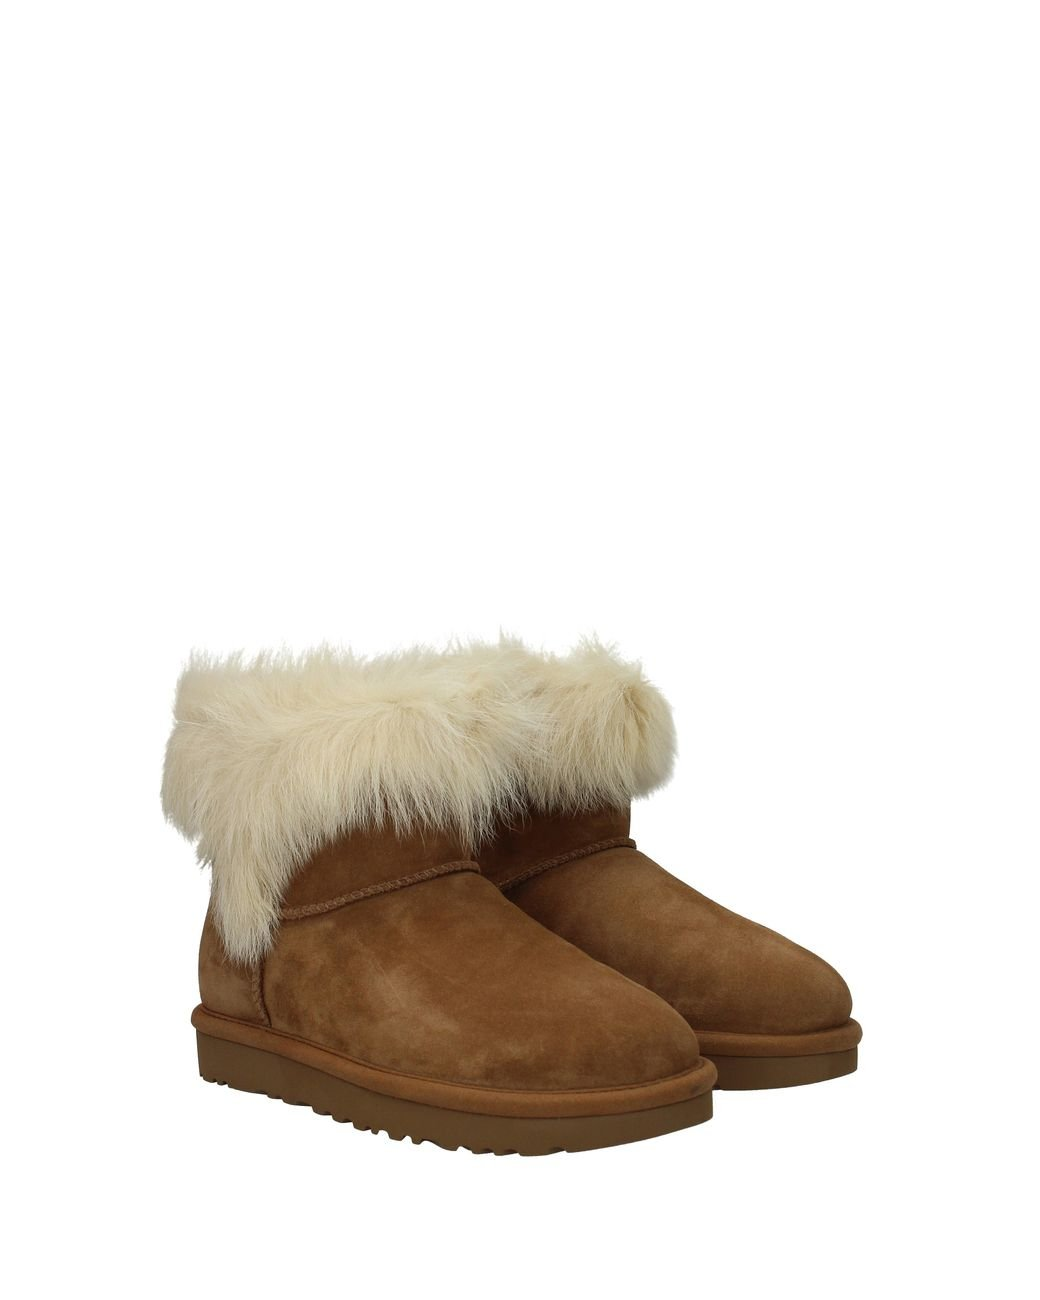 8cddb705c07 Lyst - UGG Ankle Boots Tread Lite Milla Women Brown in Brown